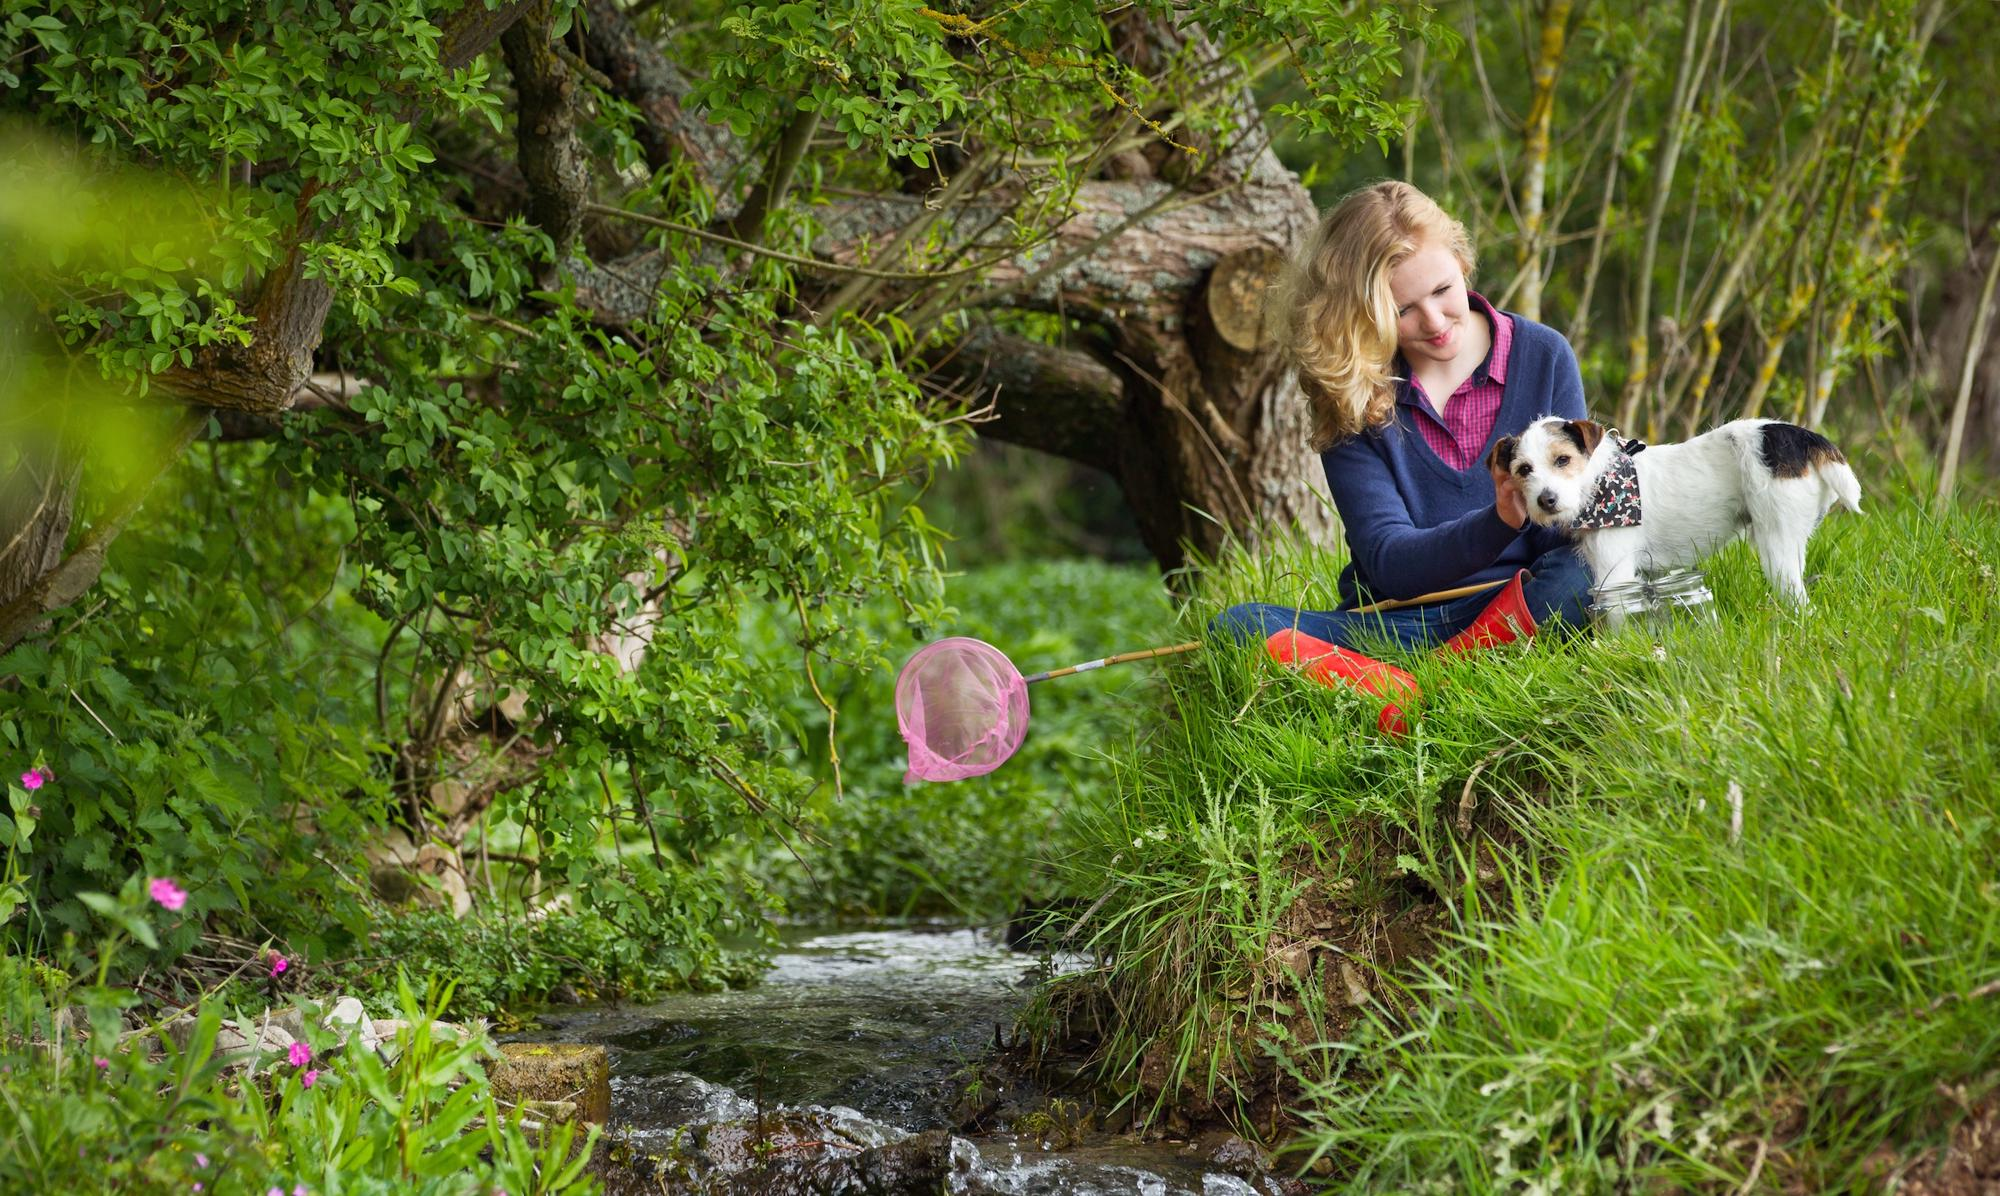 Campsites in Glamorgan – Top campsites in the Vale of Glamorgan